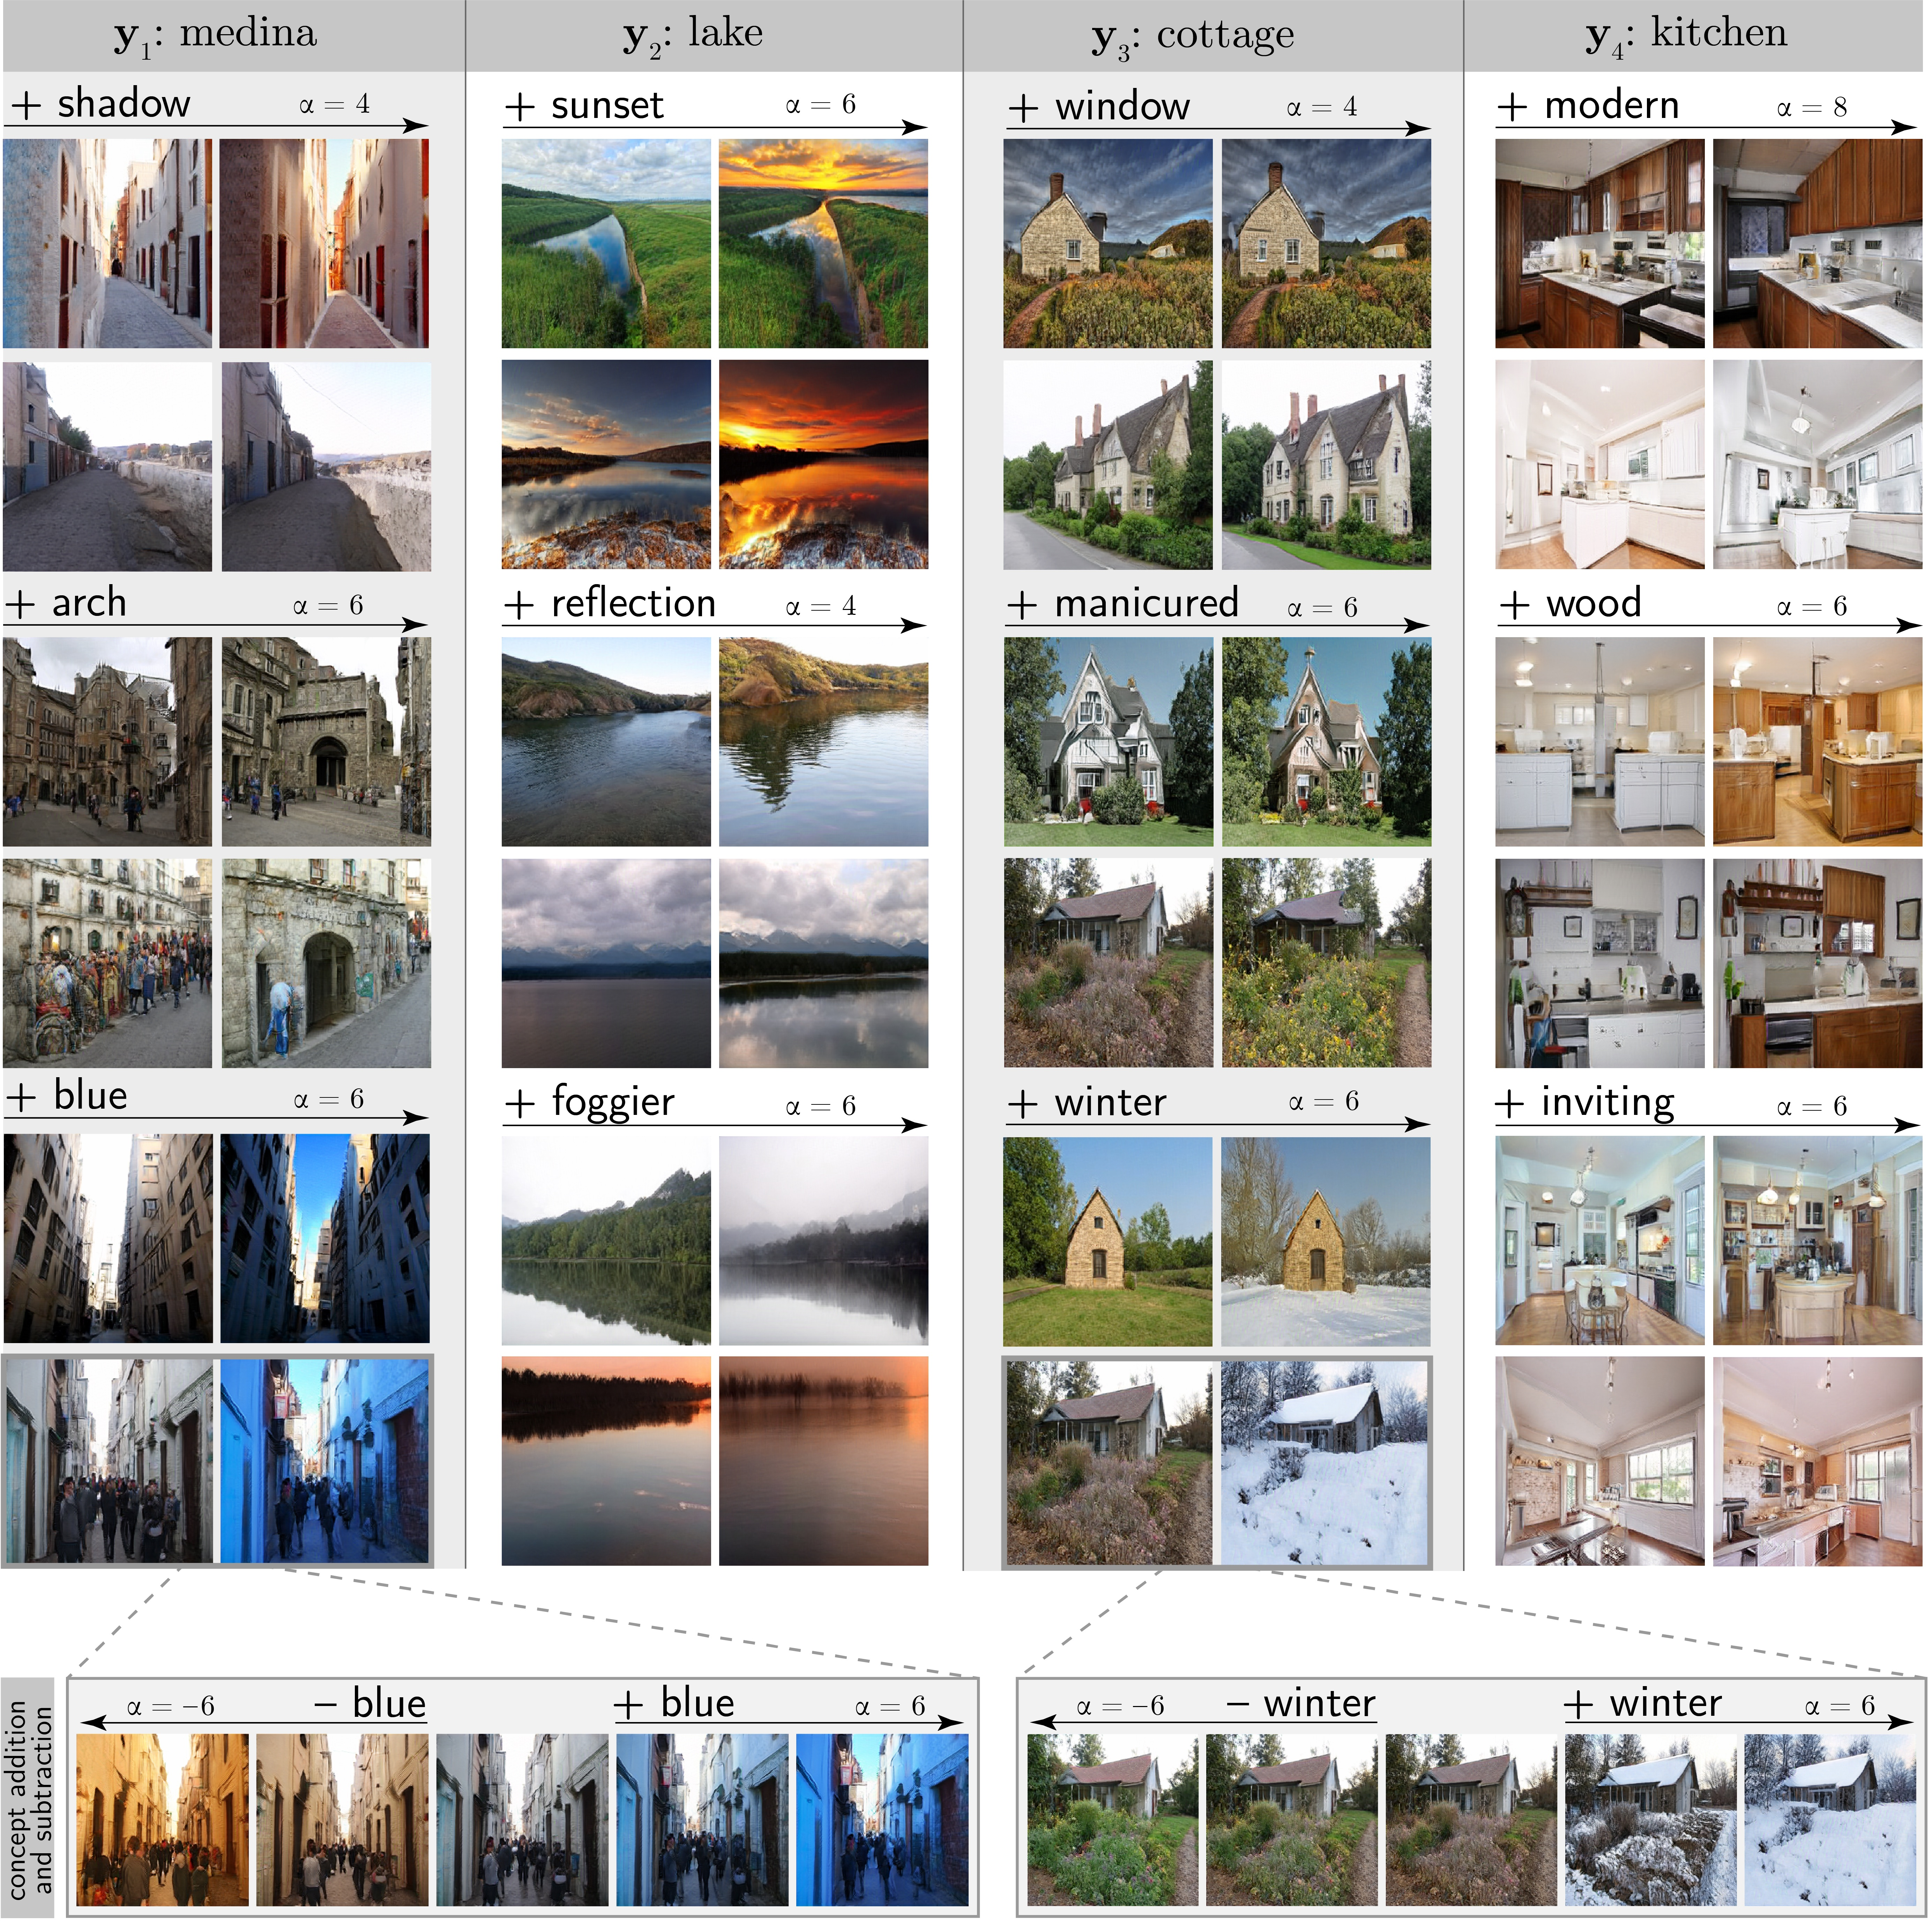 Example visual concepts across four classes of visual scenes, each applied to two